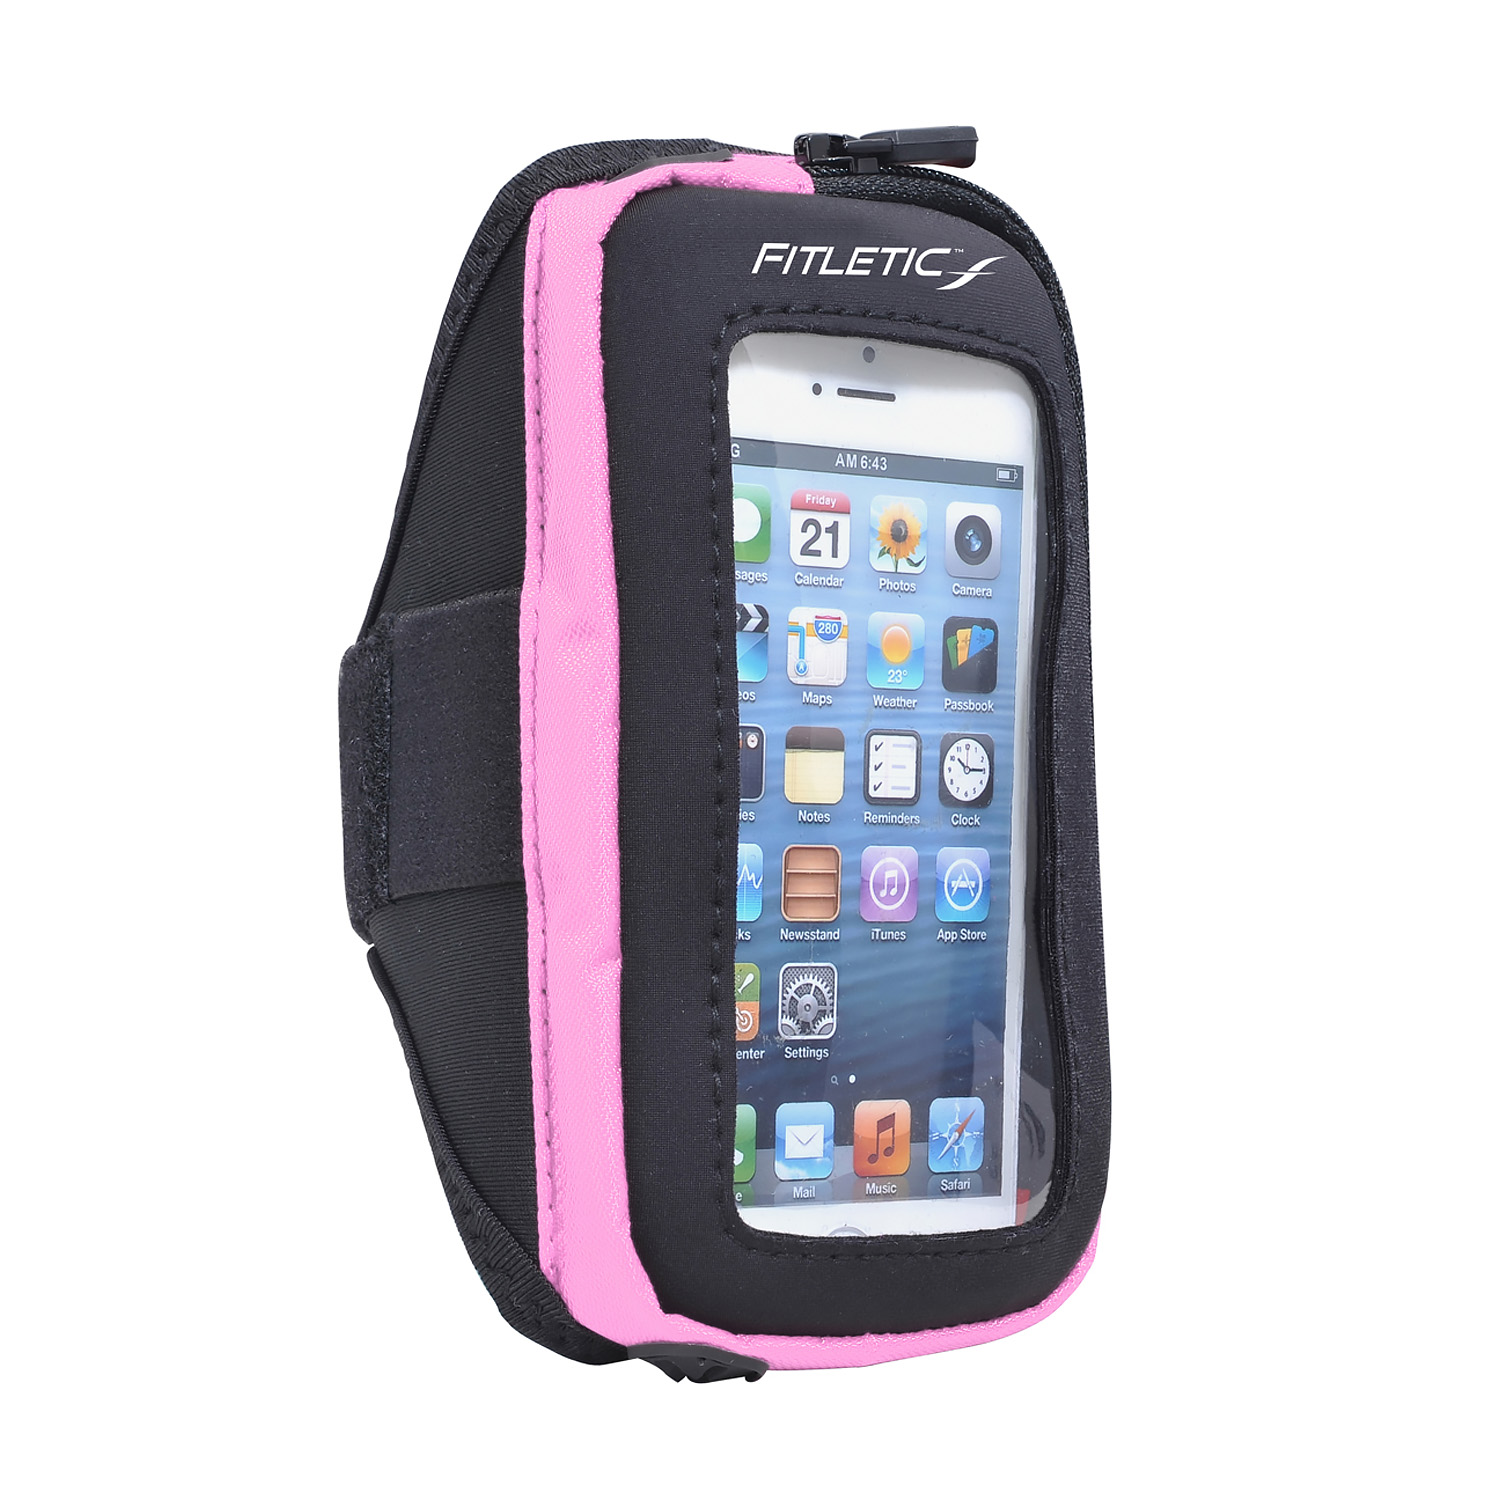 Fitletic Smart Phone Arm Band with Window Black/Pink-S/M